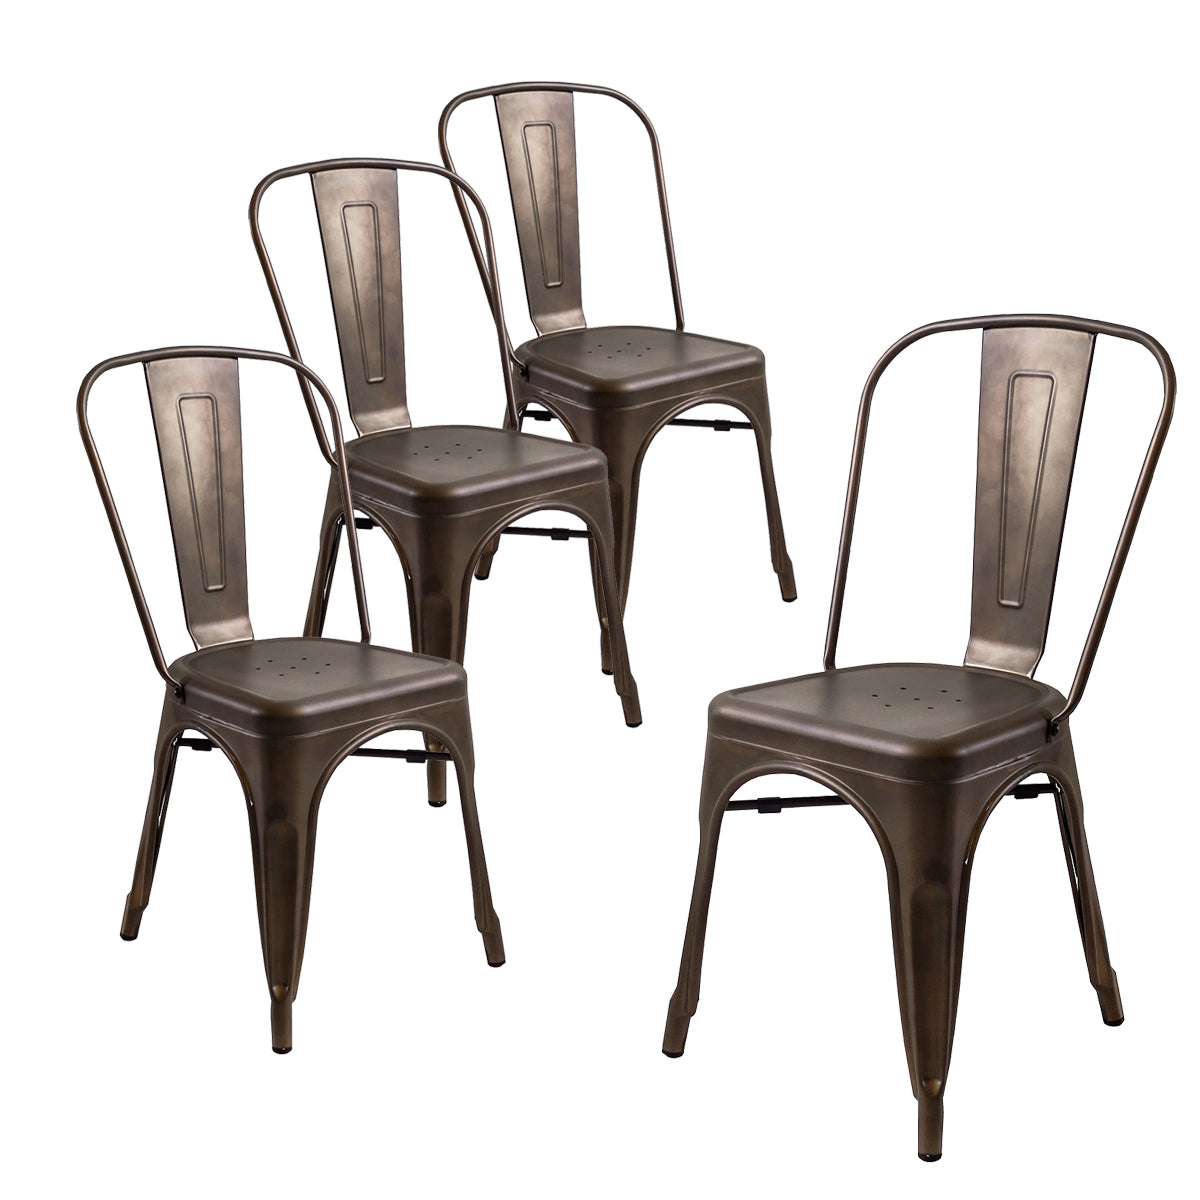 Shop High Back Dining Chairs You\'ll Love @ Buschman Store